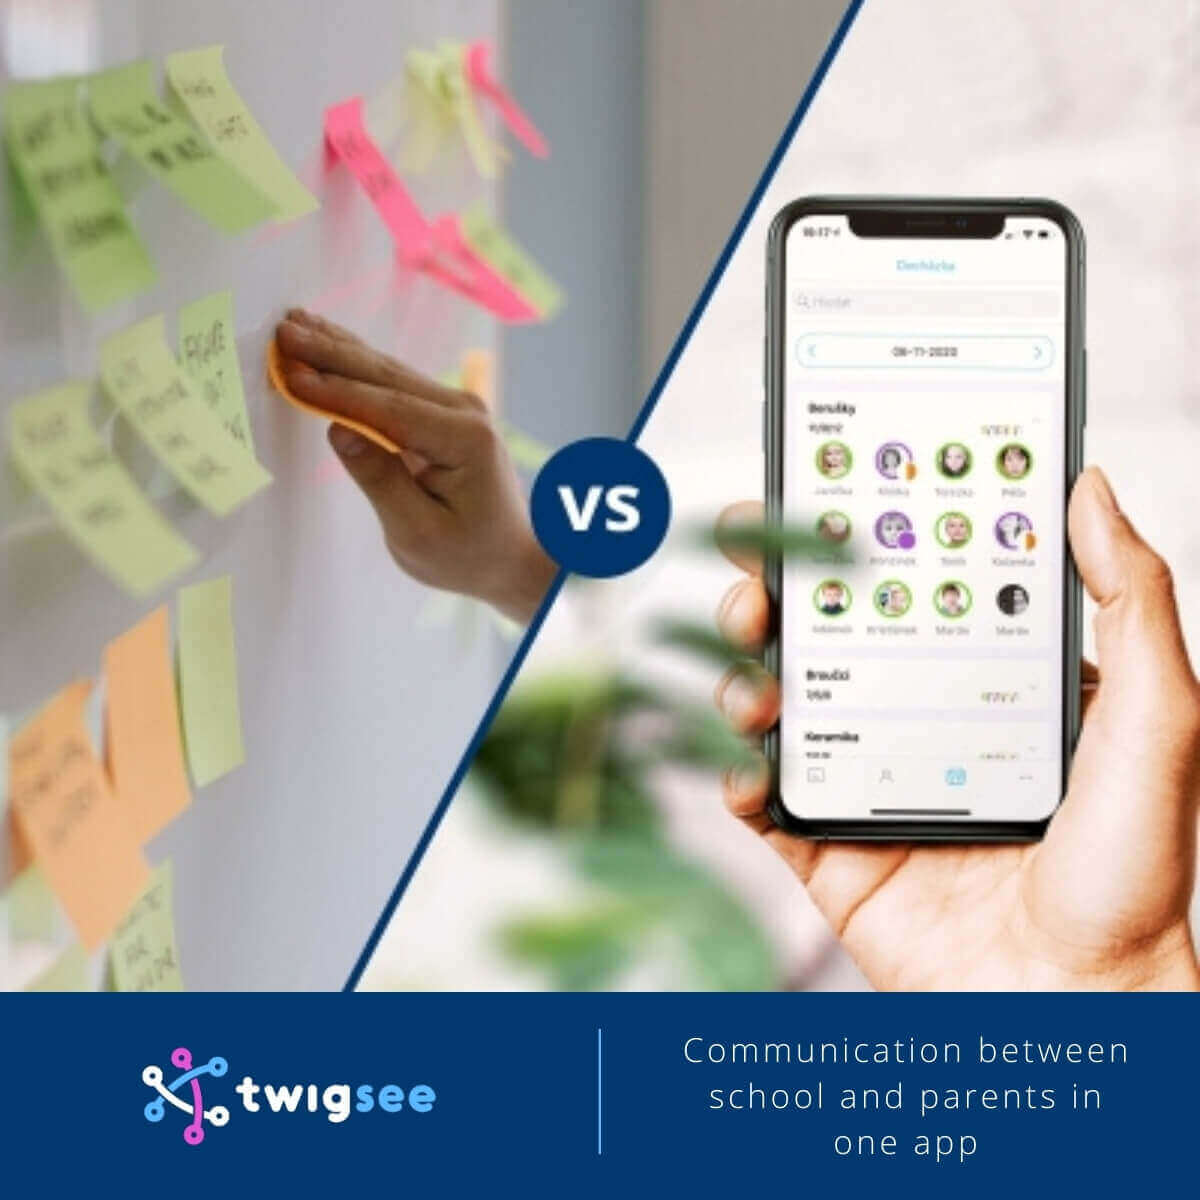 Typical preschool versus preschool online